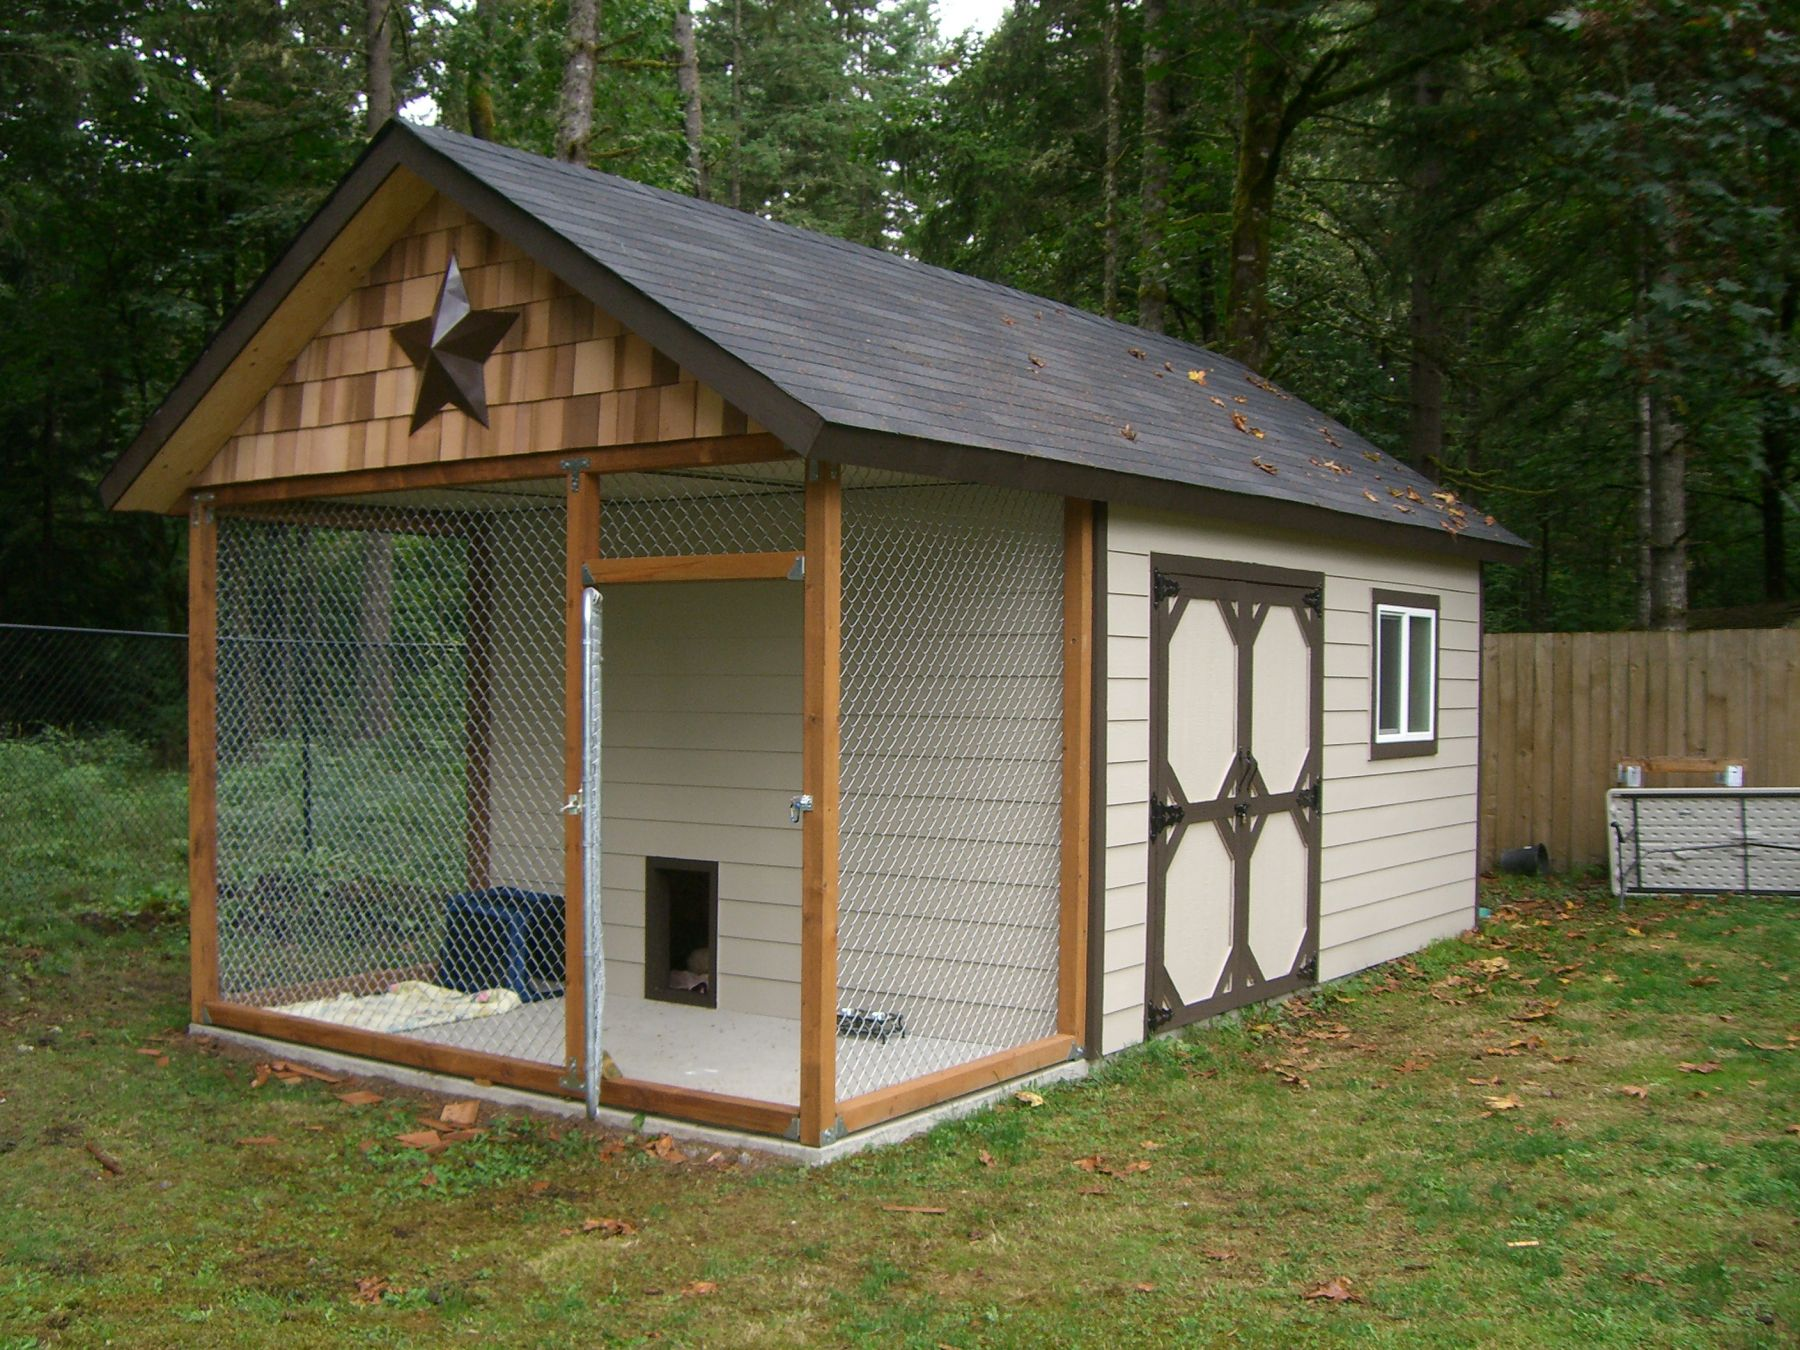 doghouse shed design ideas - Dog Kennel Design Ideas